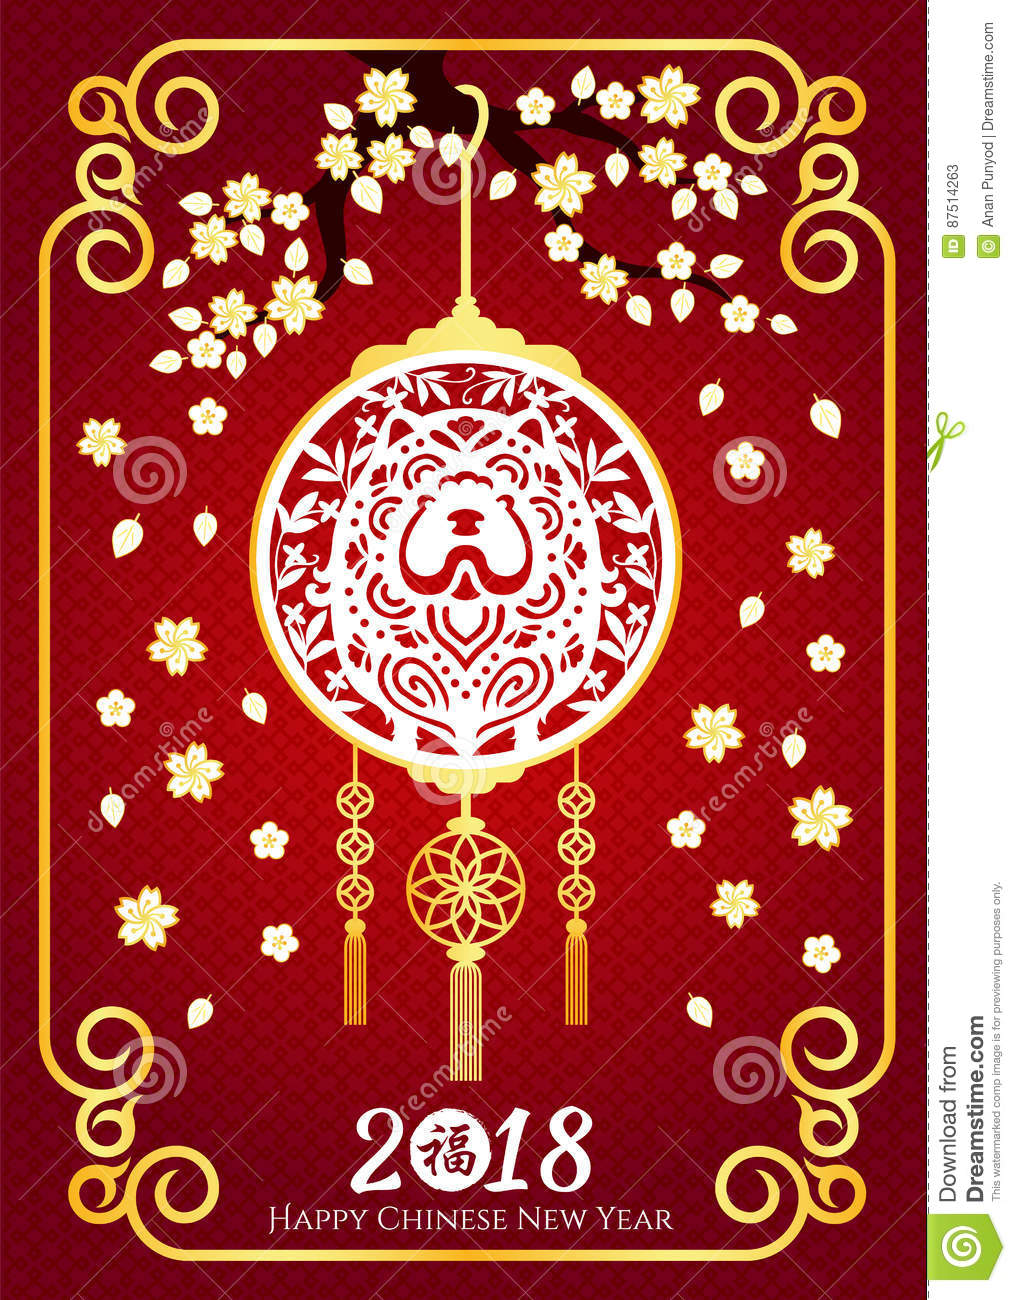 happy chinese new year 2018 card is paper cut dog zodiac in circle frame hanging on